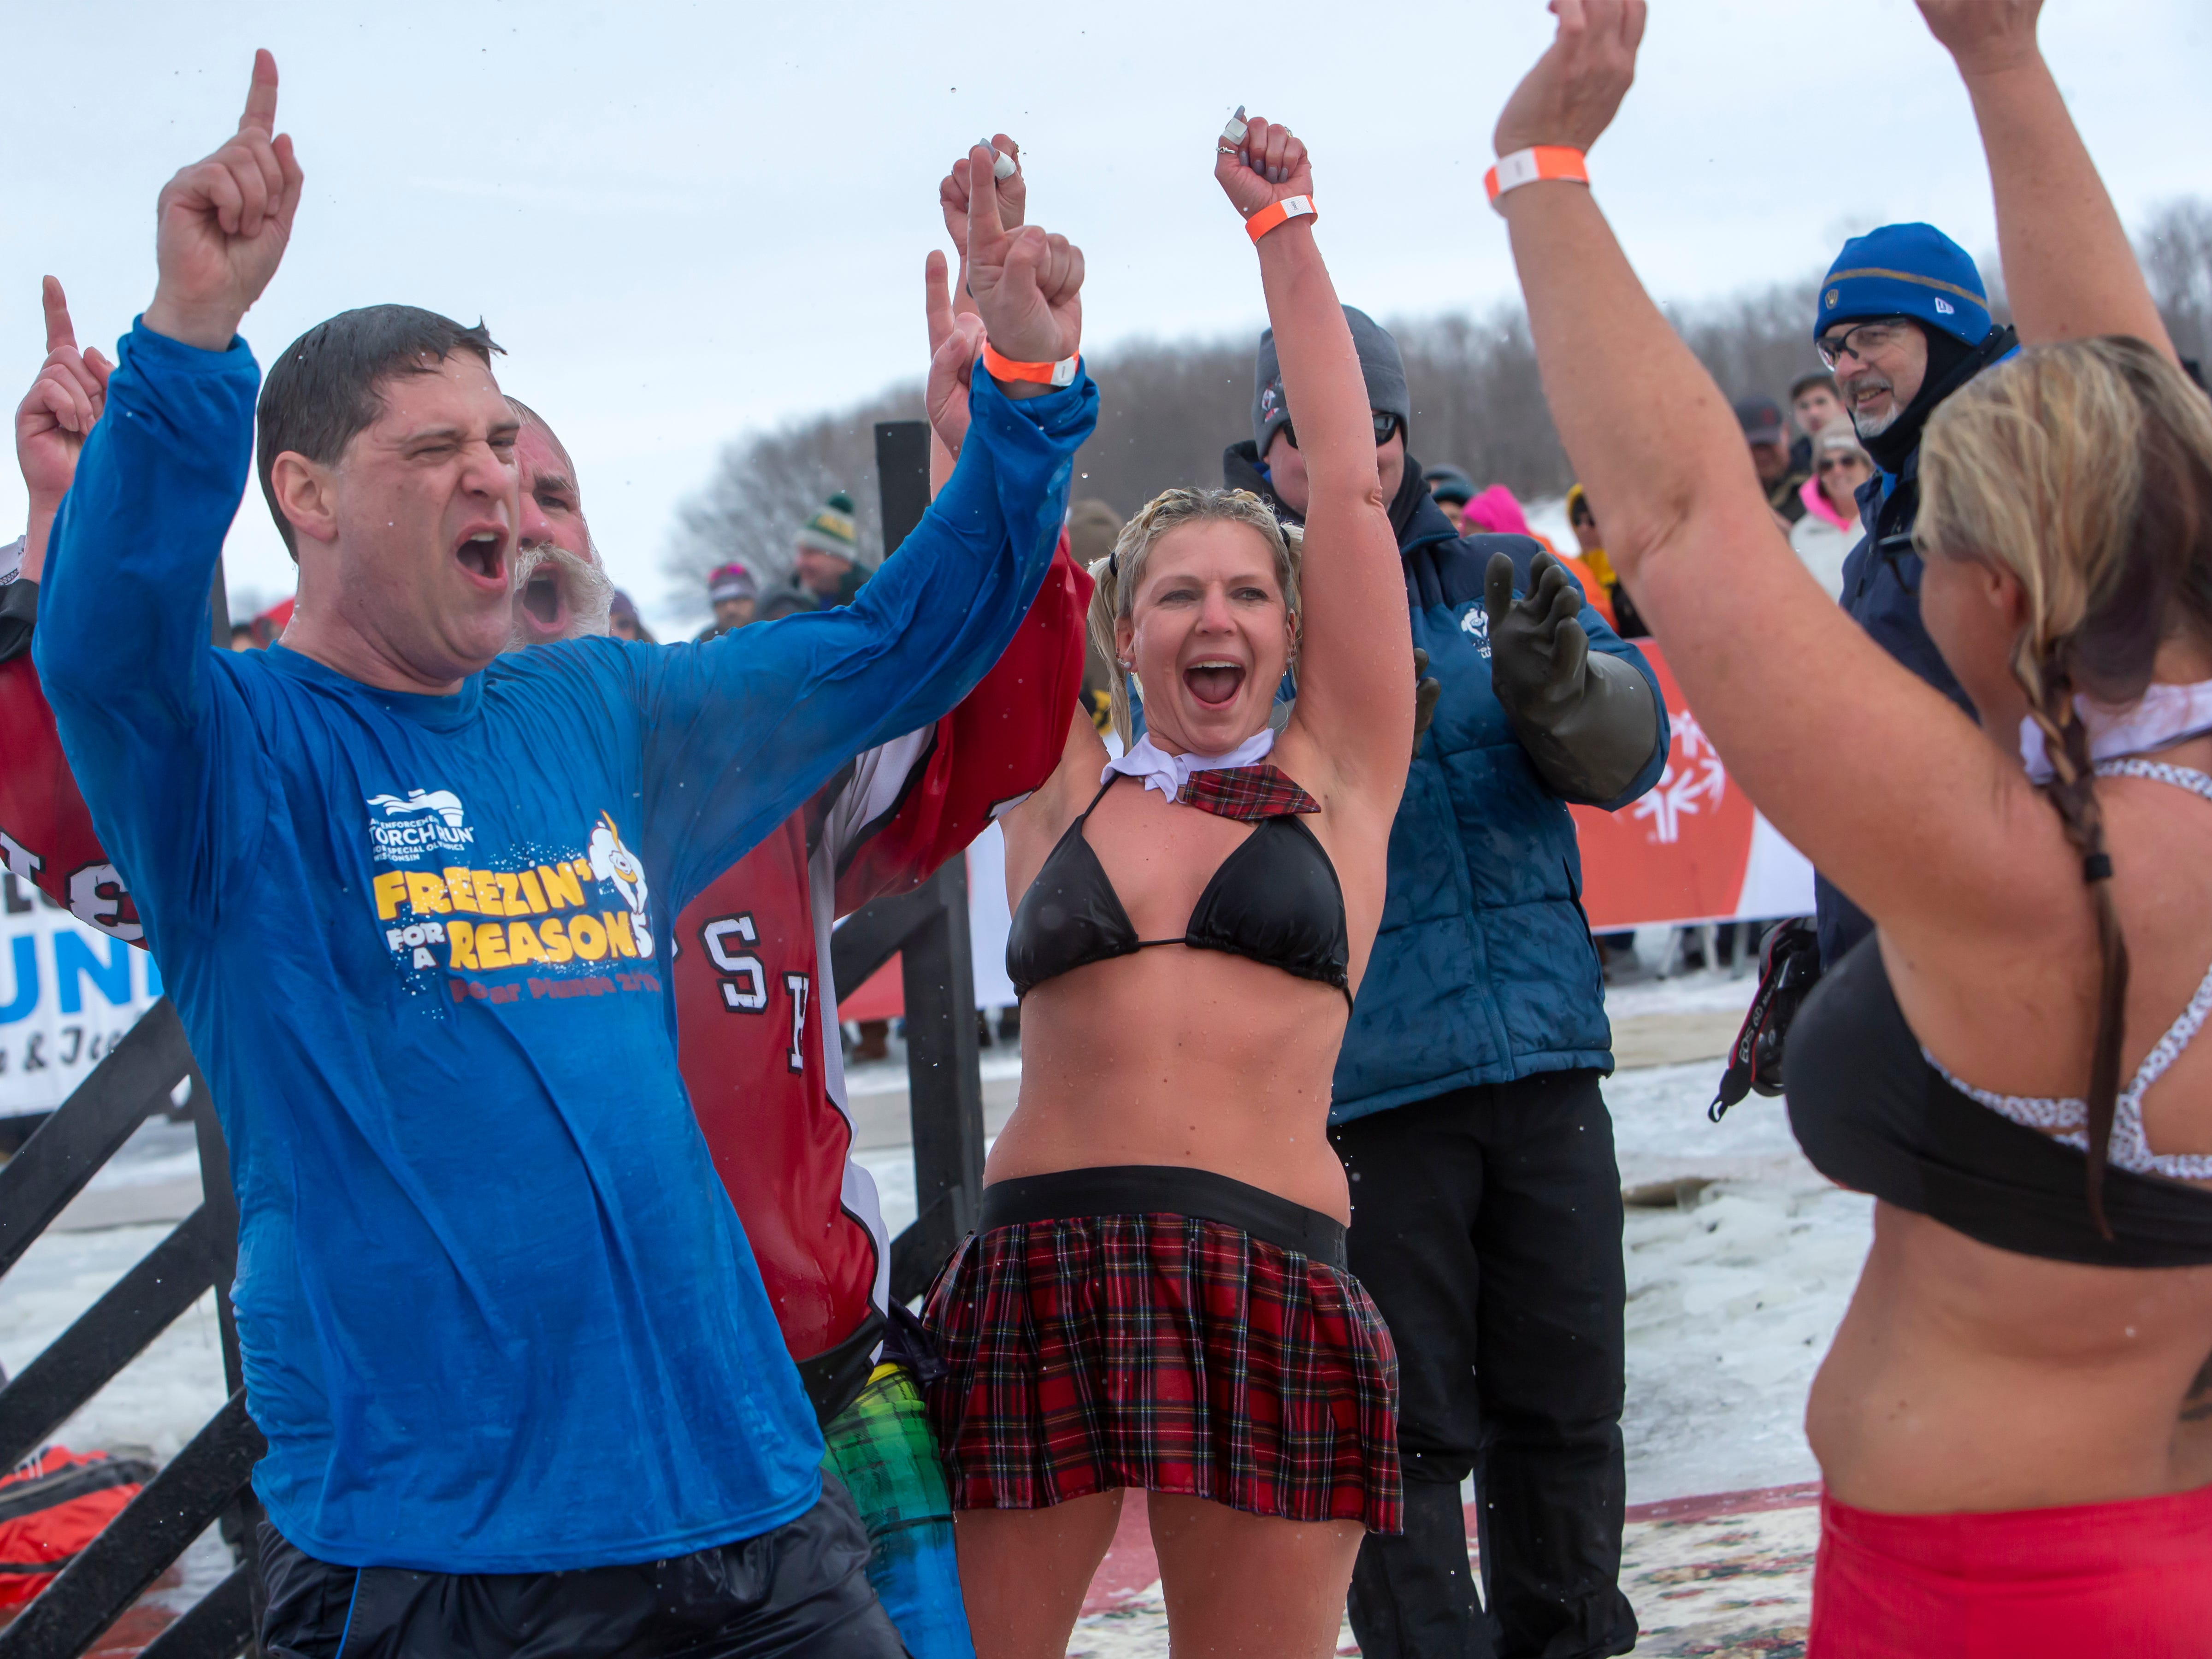 Super plungers start off the the Special Olympics Wisconsin Polar Plunge event in Oshkosh, Wis., on Saturday, February 16, 2019, at Miller's Bay in Menominee Park.